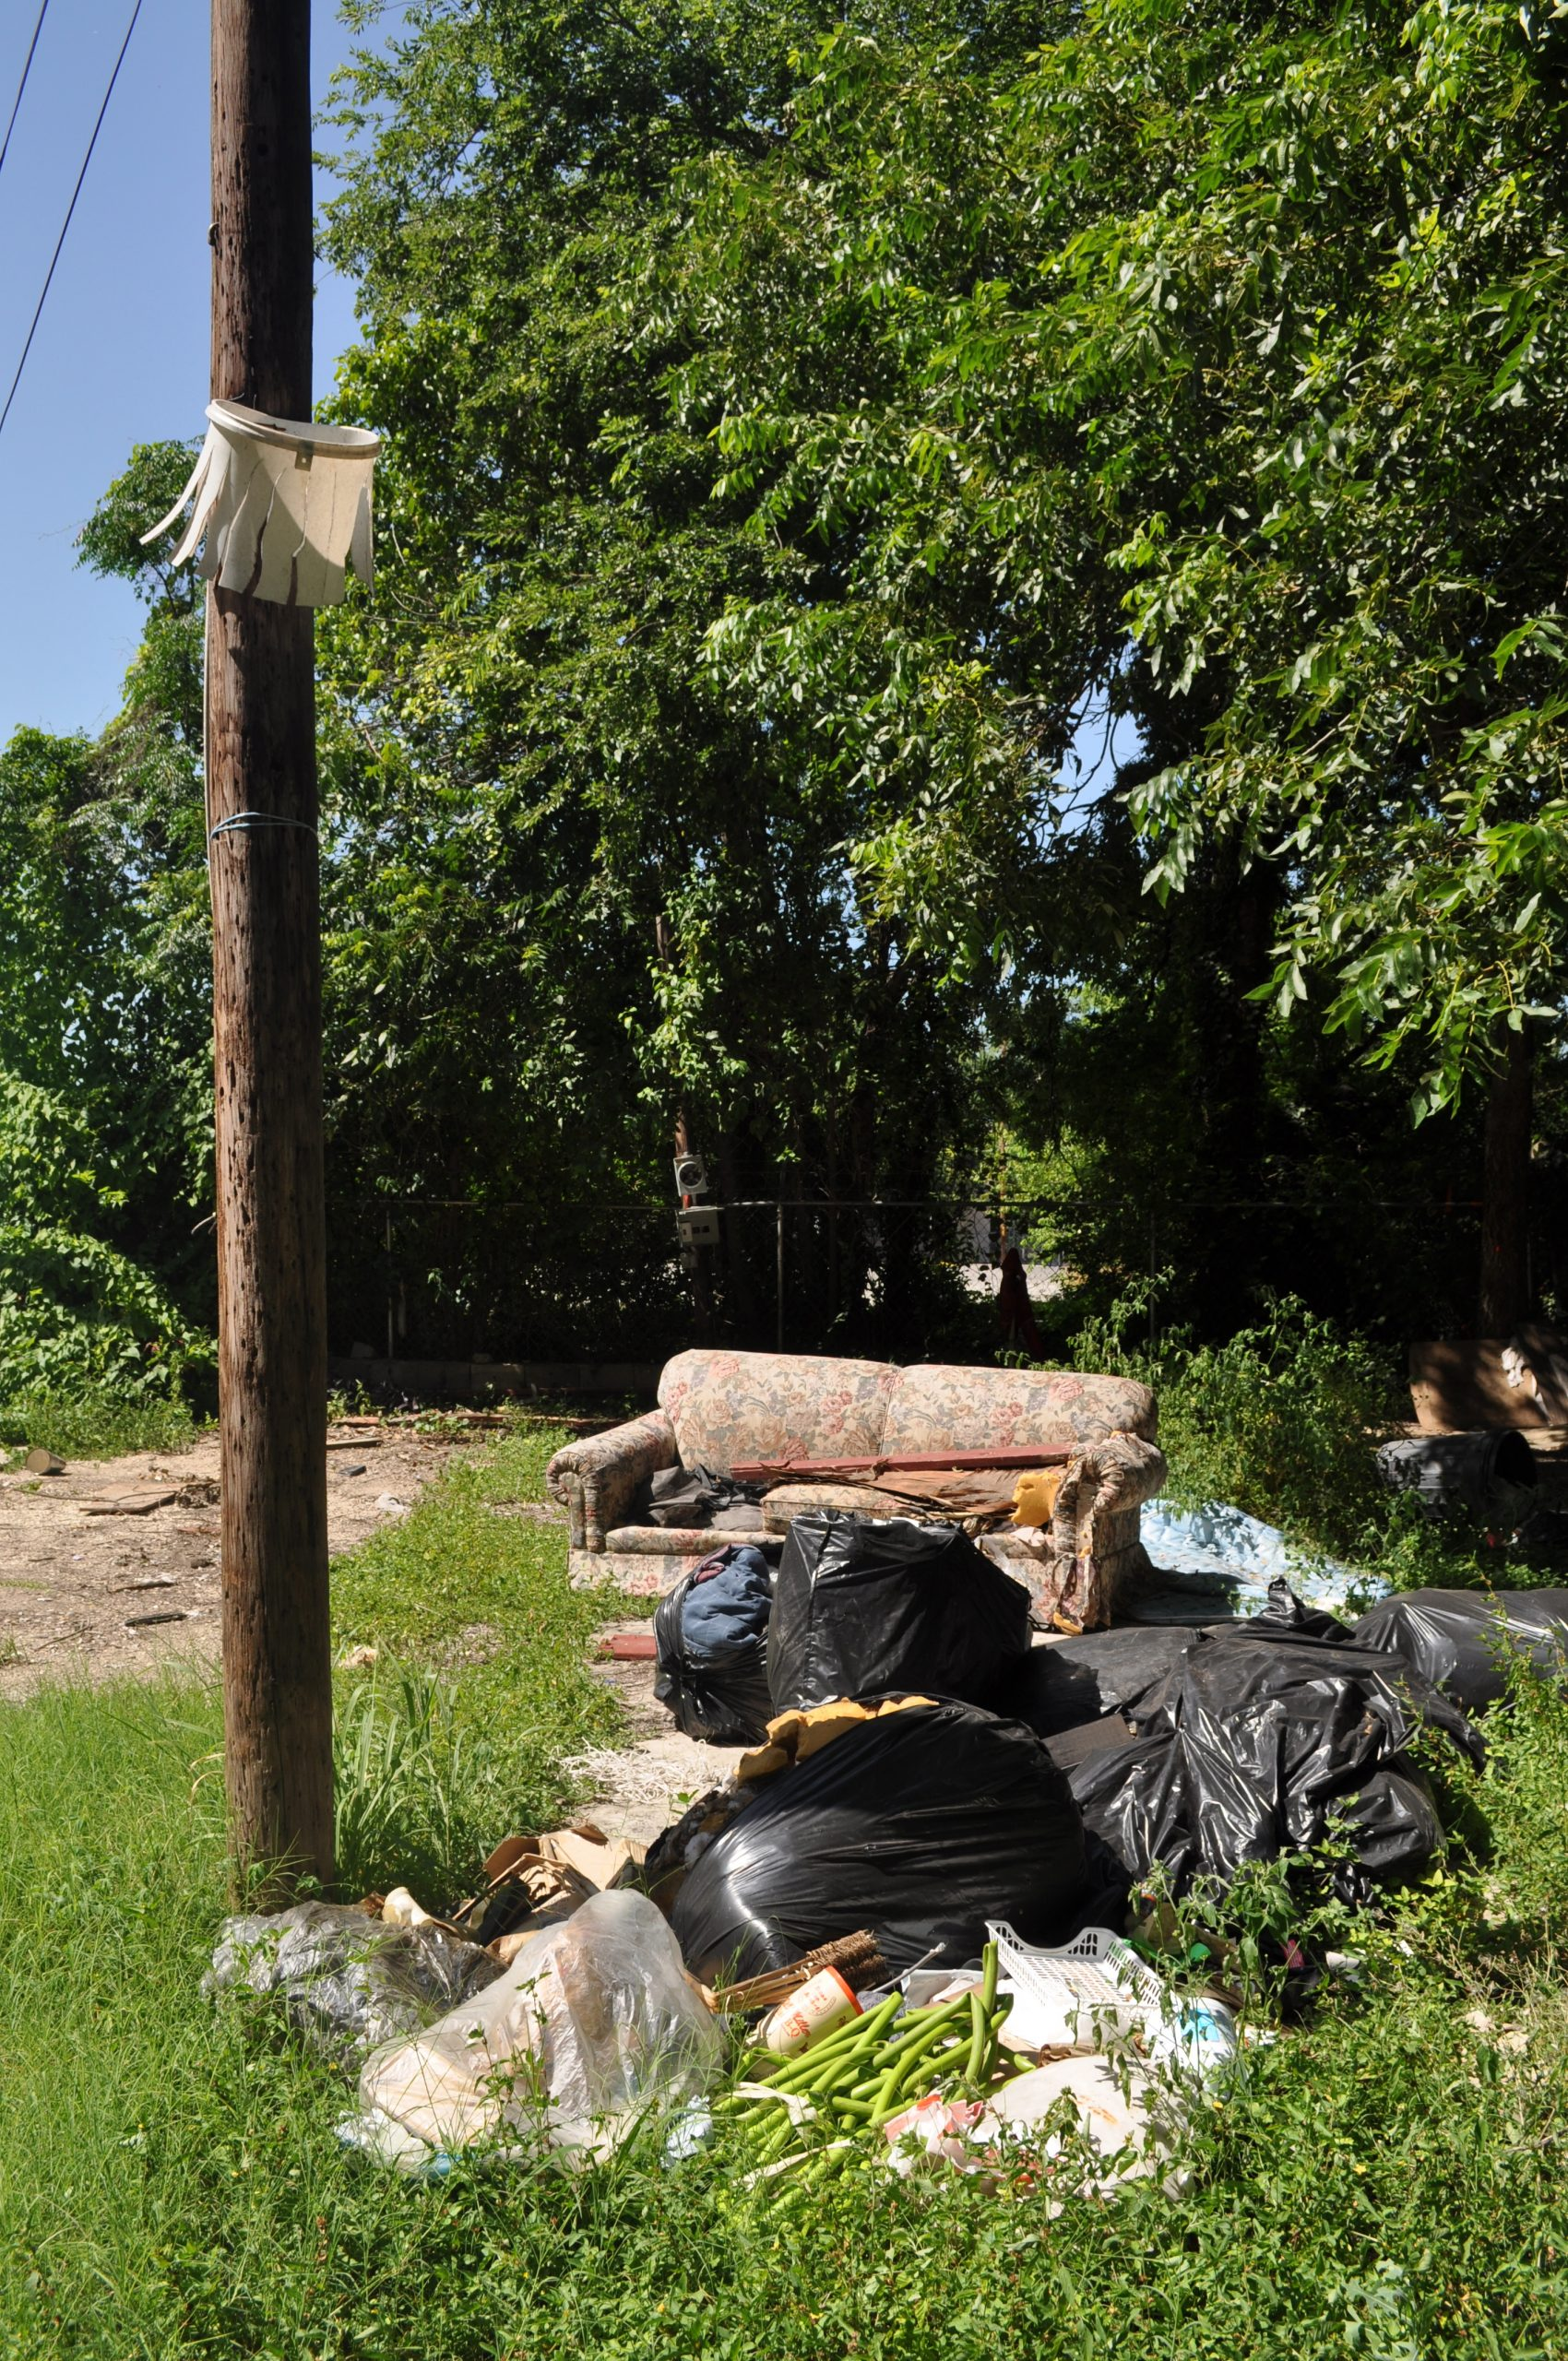 A homemade basketball hoop at the future Roosevelt Avenue development site. Photo by Iris Dimmick.